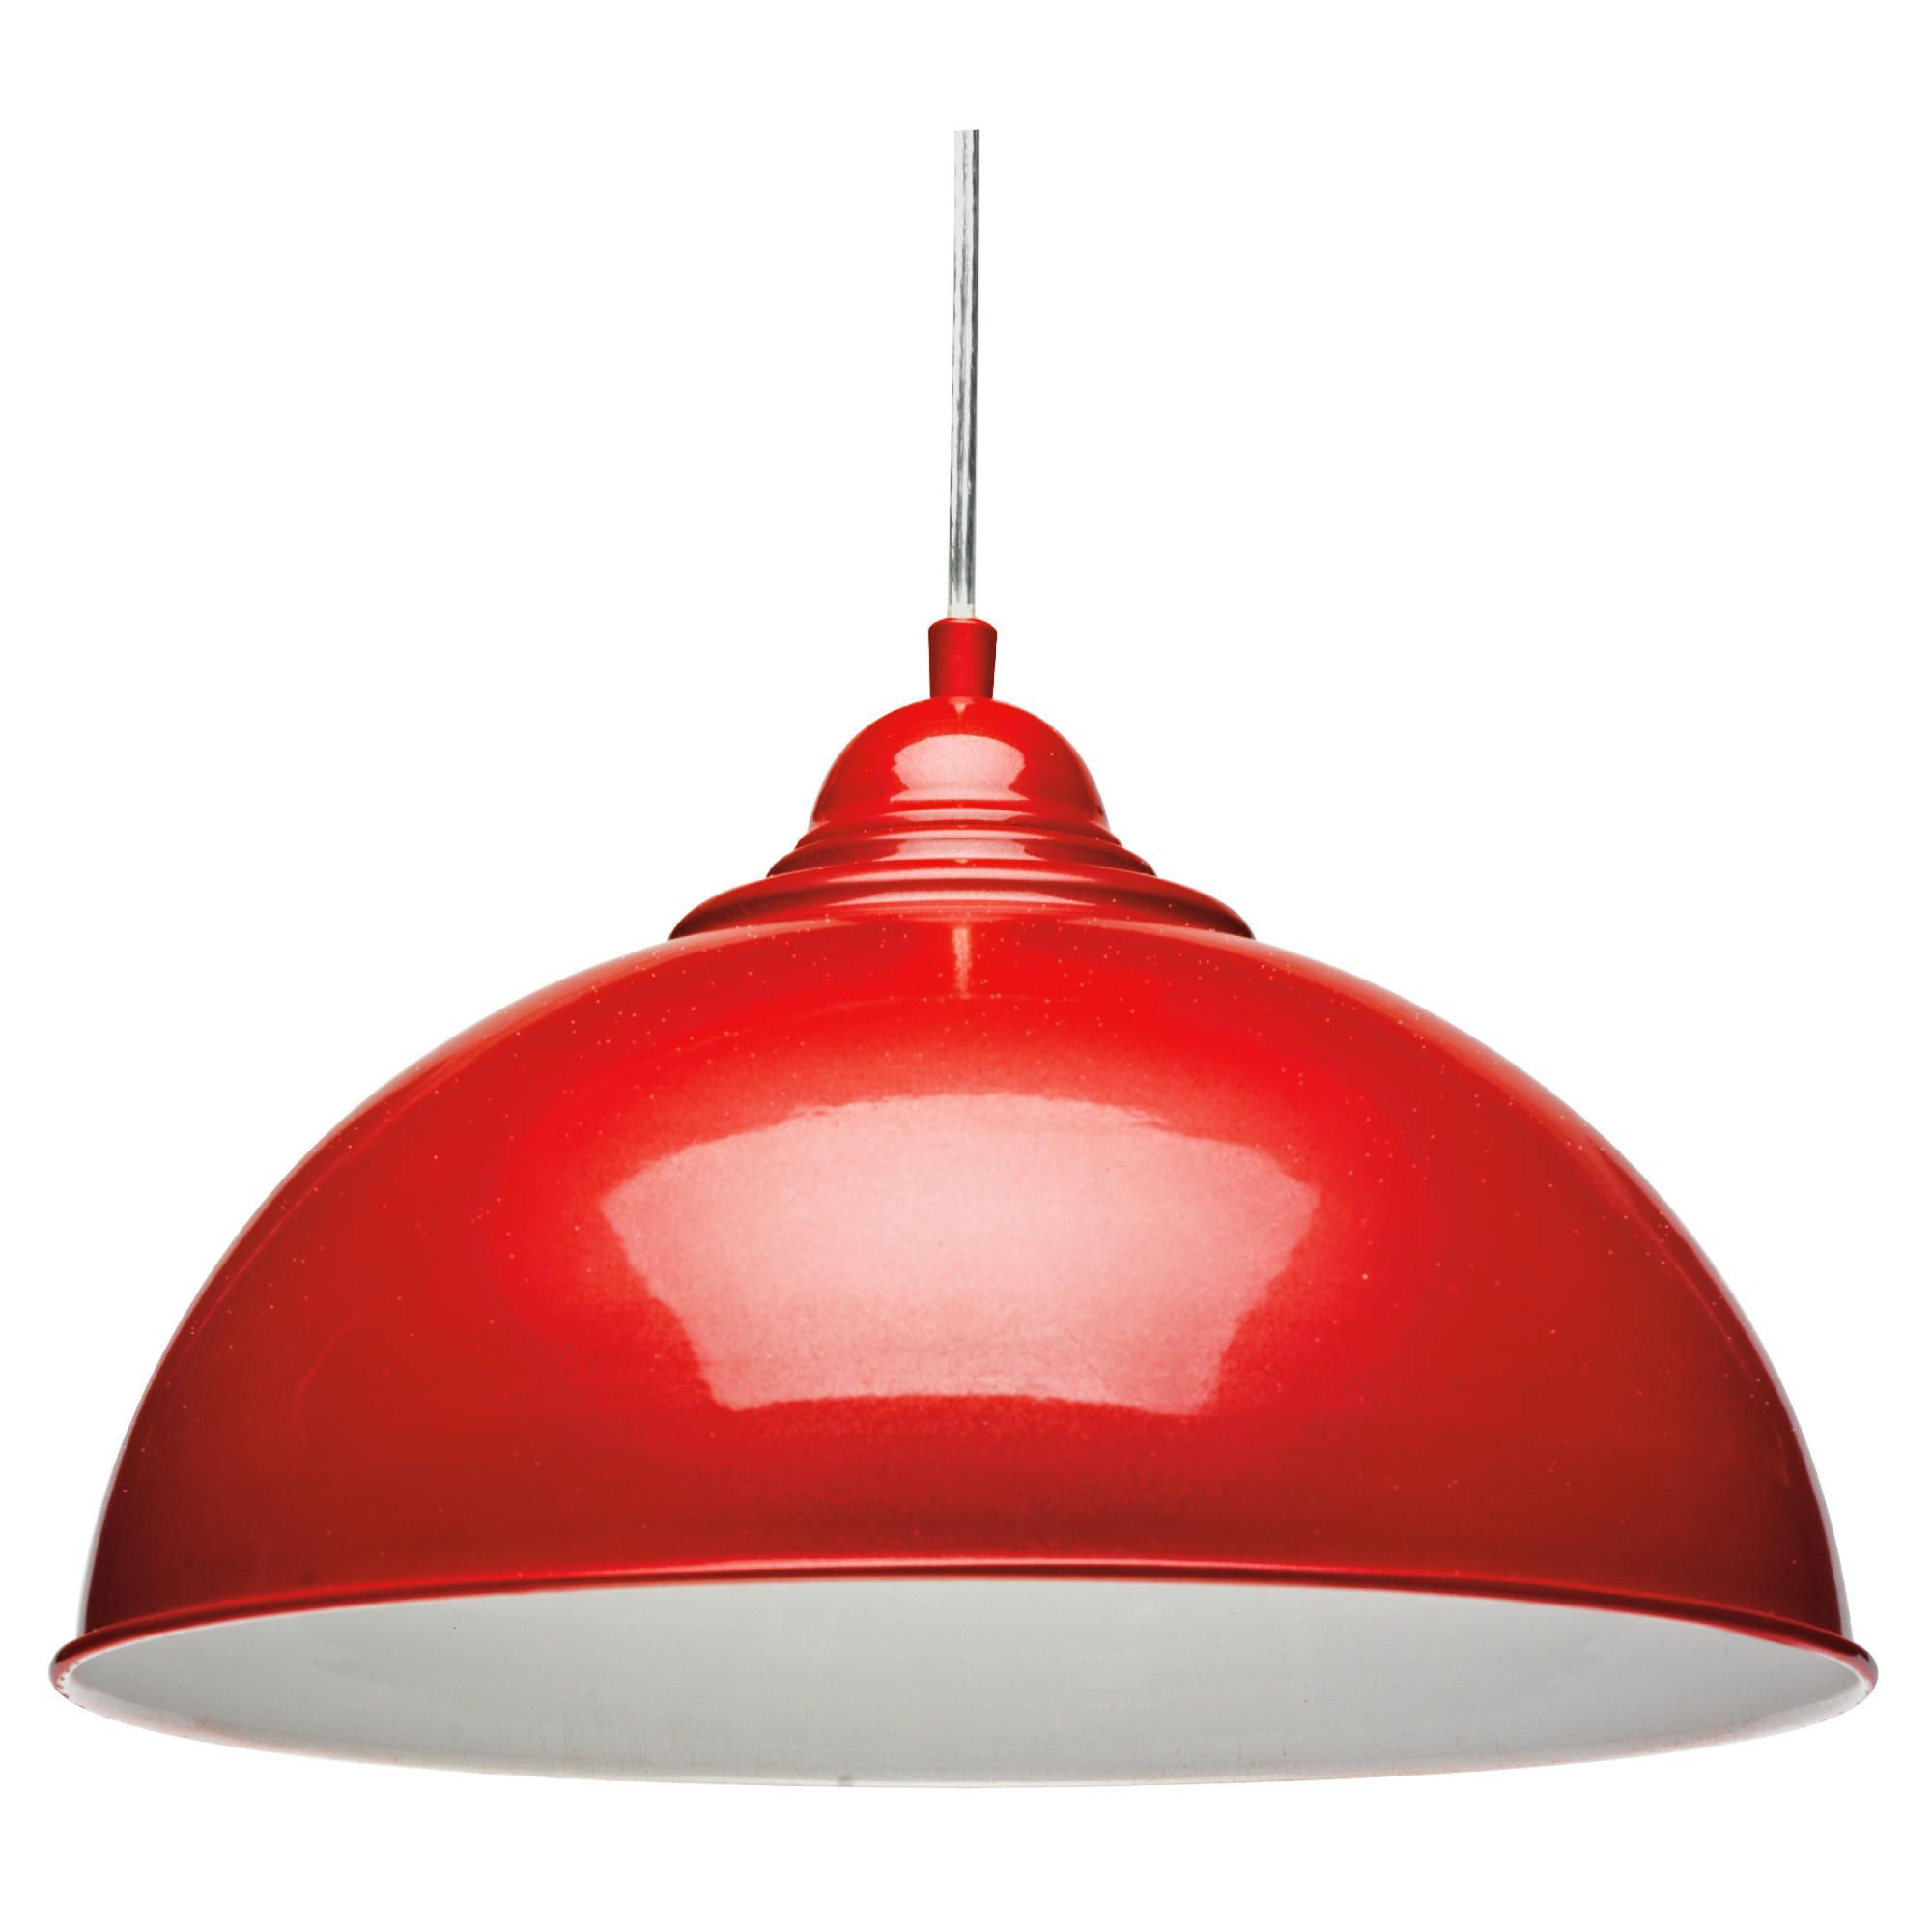 Retro Pendant Light Fitting In Red Red Kitchen Pendant Lights Red Kitchen Decor Red Ceiling